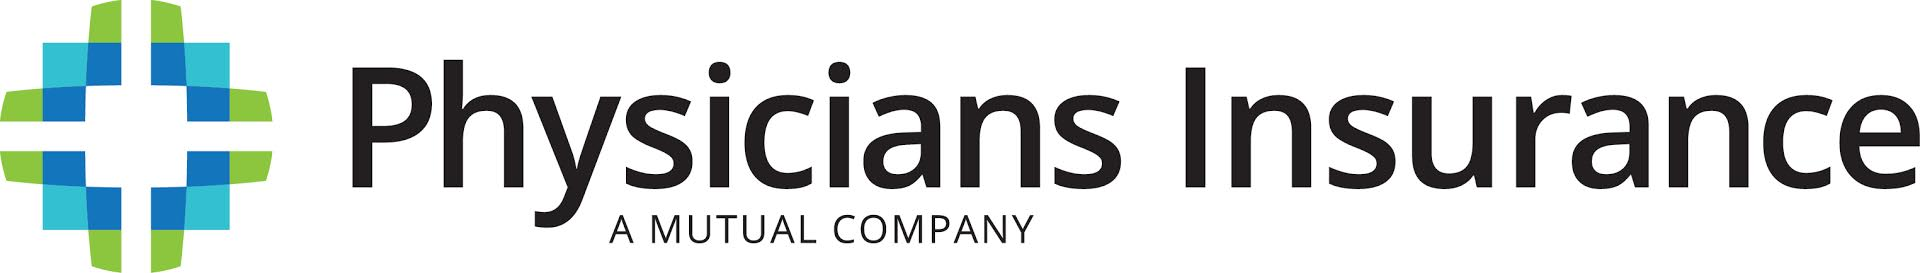 Physicians Insurance Logo